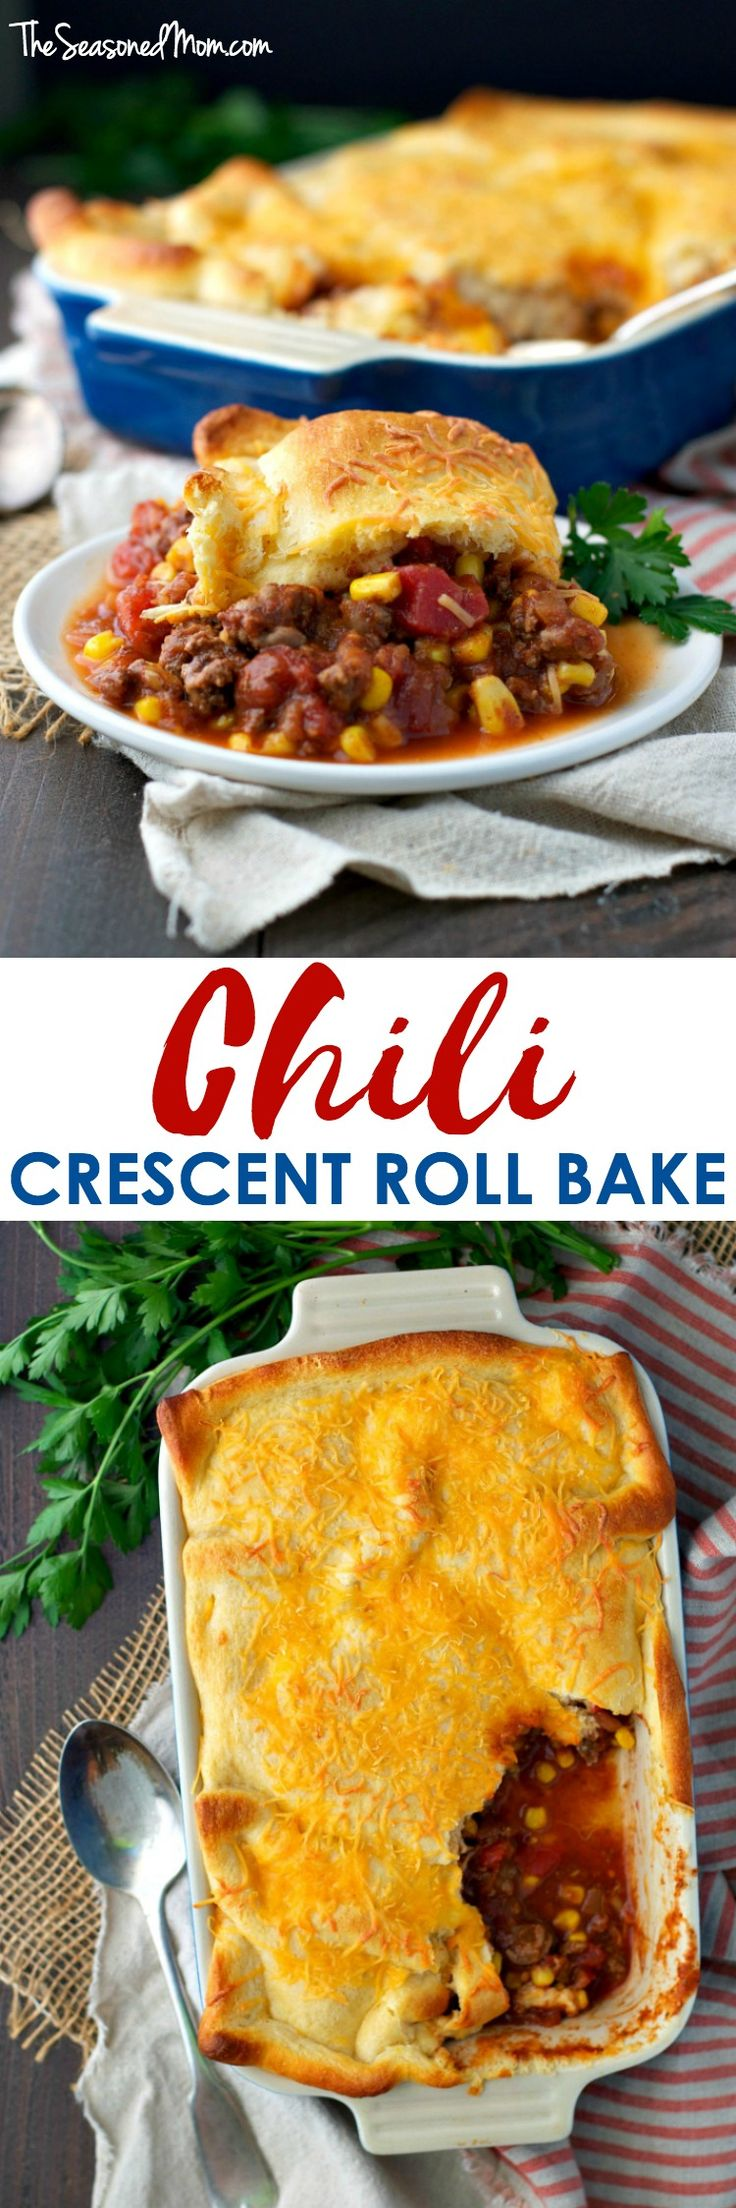 This cozy Chili Crescent Roll Bake is an easy dinner that's ready in 30 minutes! The hearty beef and corn chili is topped with a cheesy cheddar crescent roll crust for a comfort food casserole that the whole family will love!